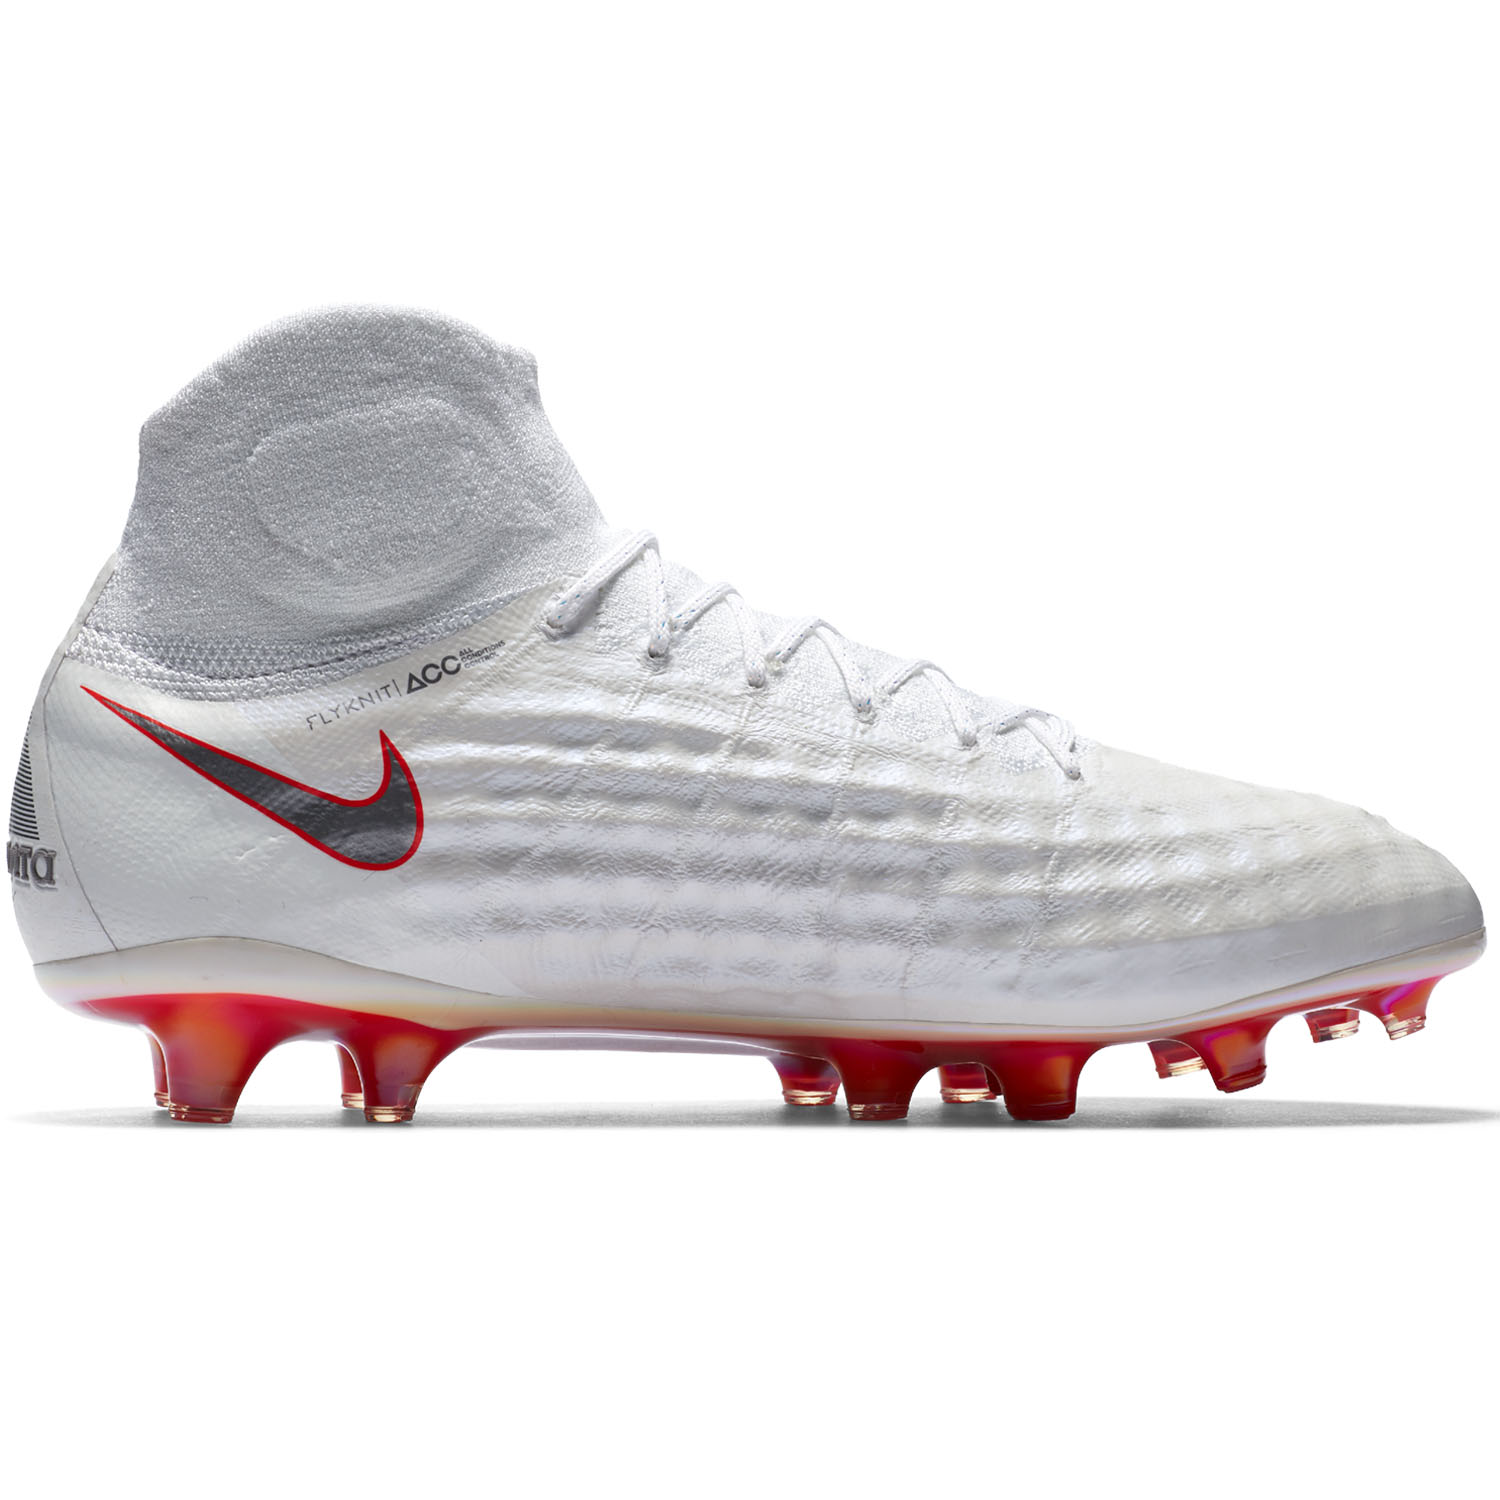 9f5aec0c7b6 get nike magista cleats for sale jacksonville dd4a6 d9e85